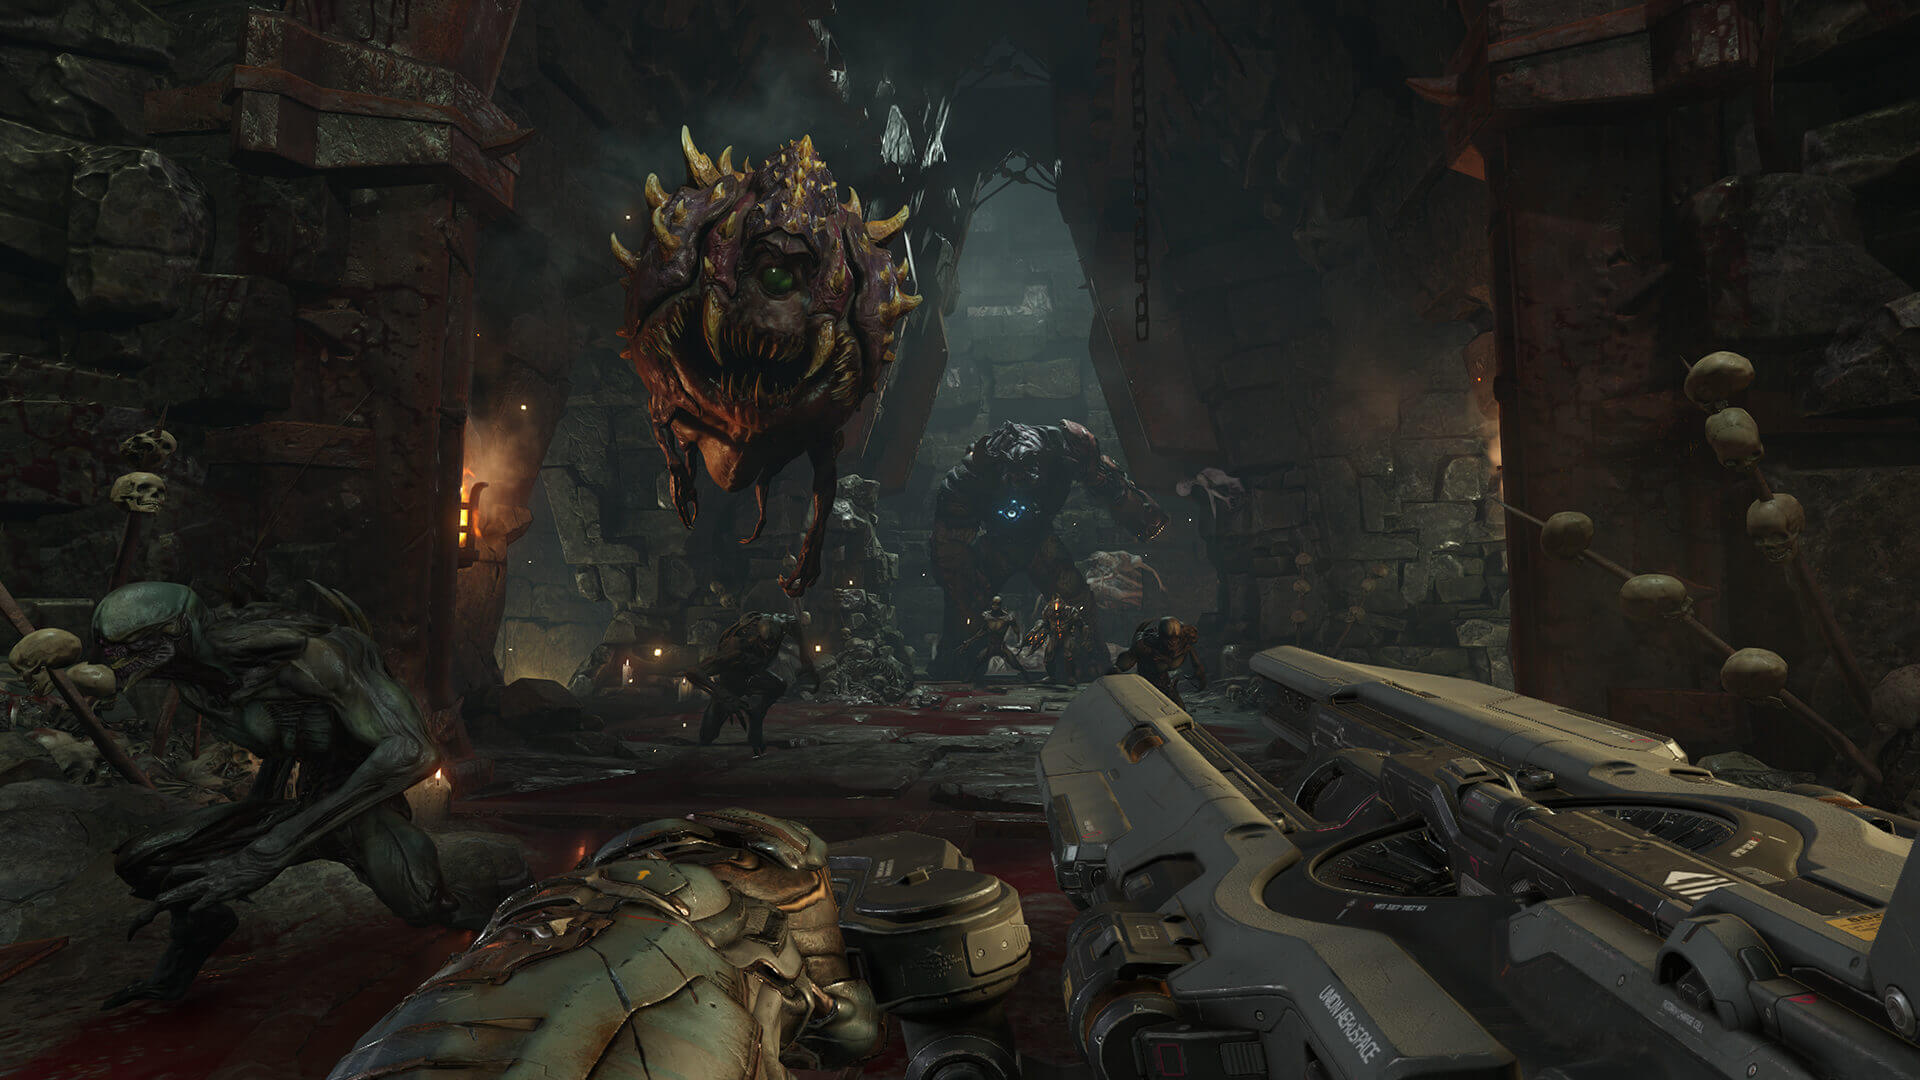 Doom PC Requirements And File Size Revealed